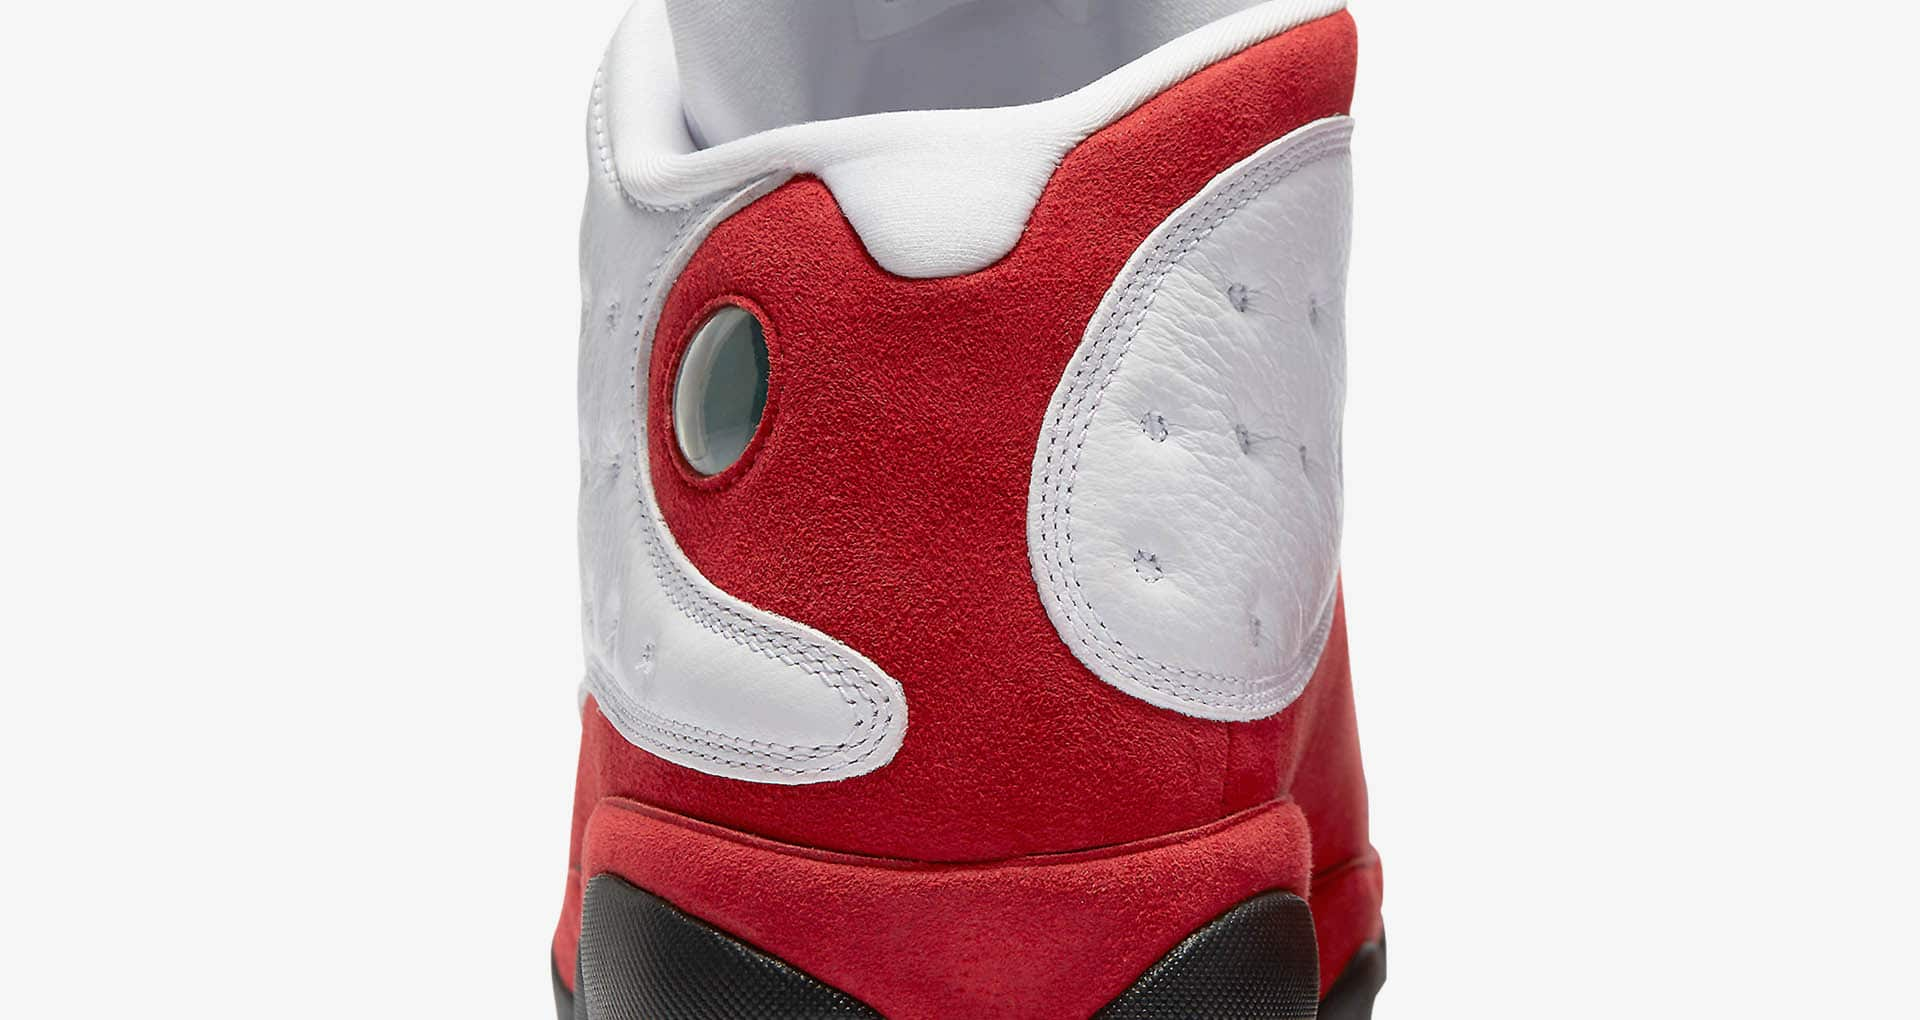 5d6cd80746a354 ... the Tinker Hatfield design was introduced in multiple Chicago-inspired  colorways throughout the 1997-1998 campaign. Now